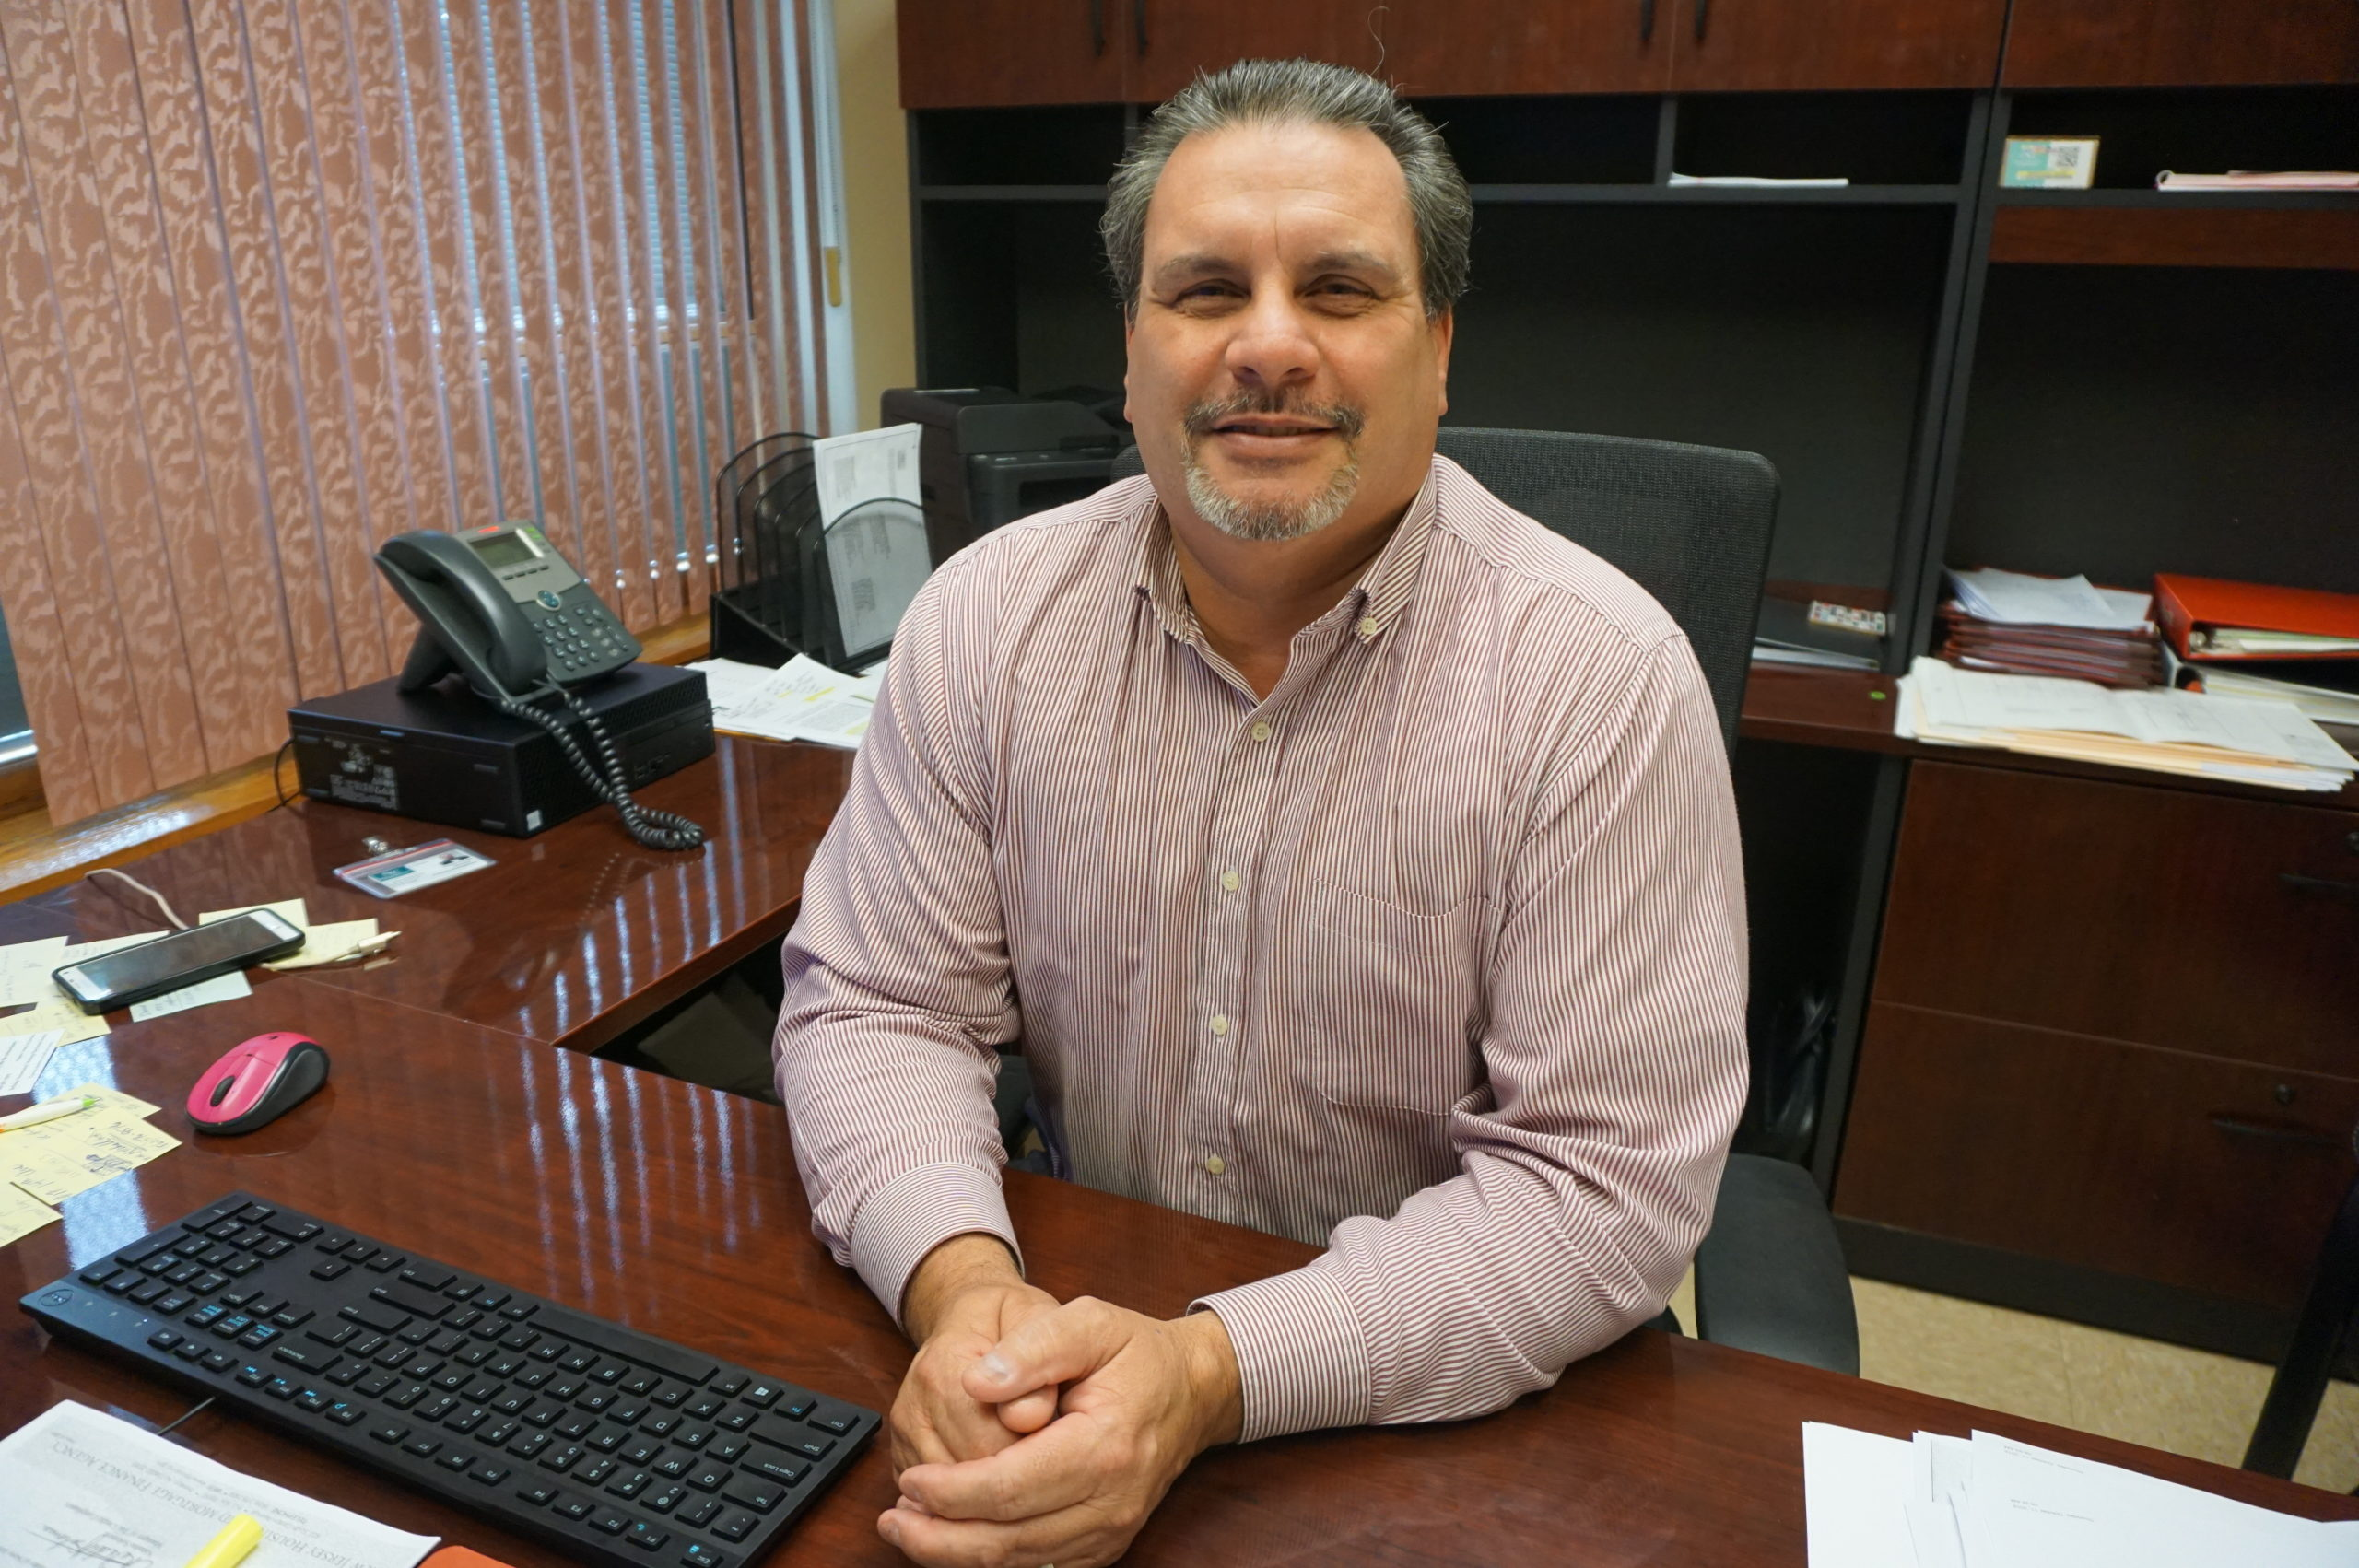 New Director of Property Management Hopes To Instill Team Culture